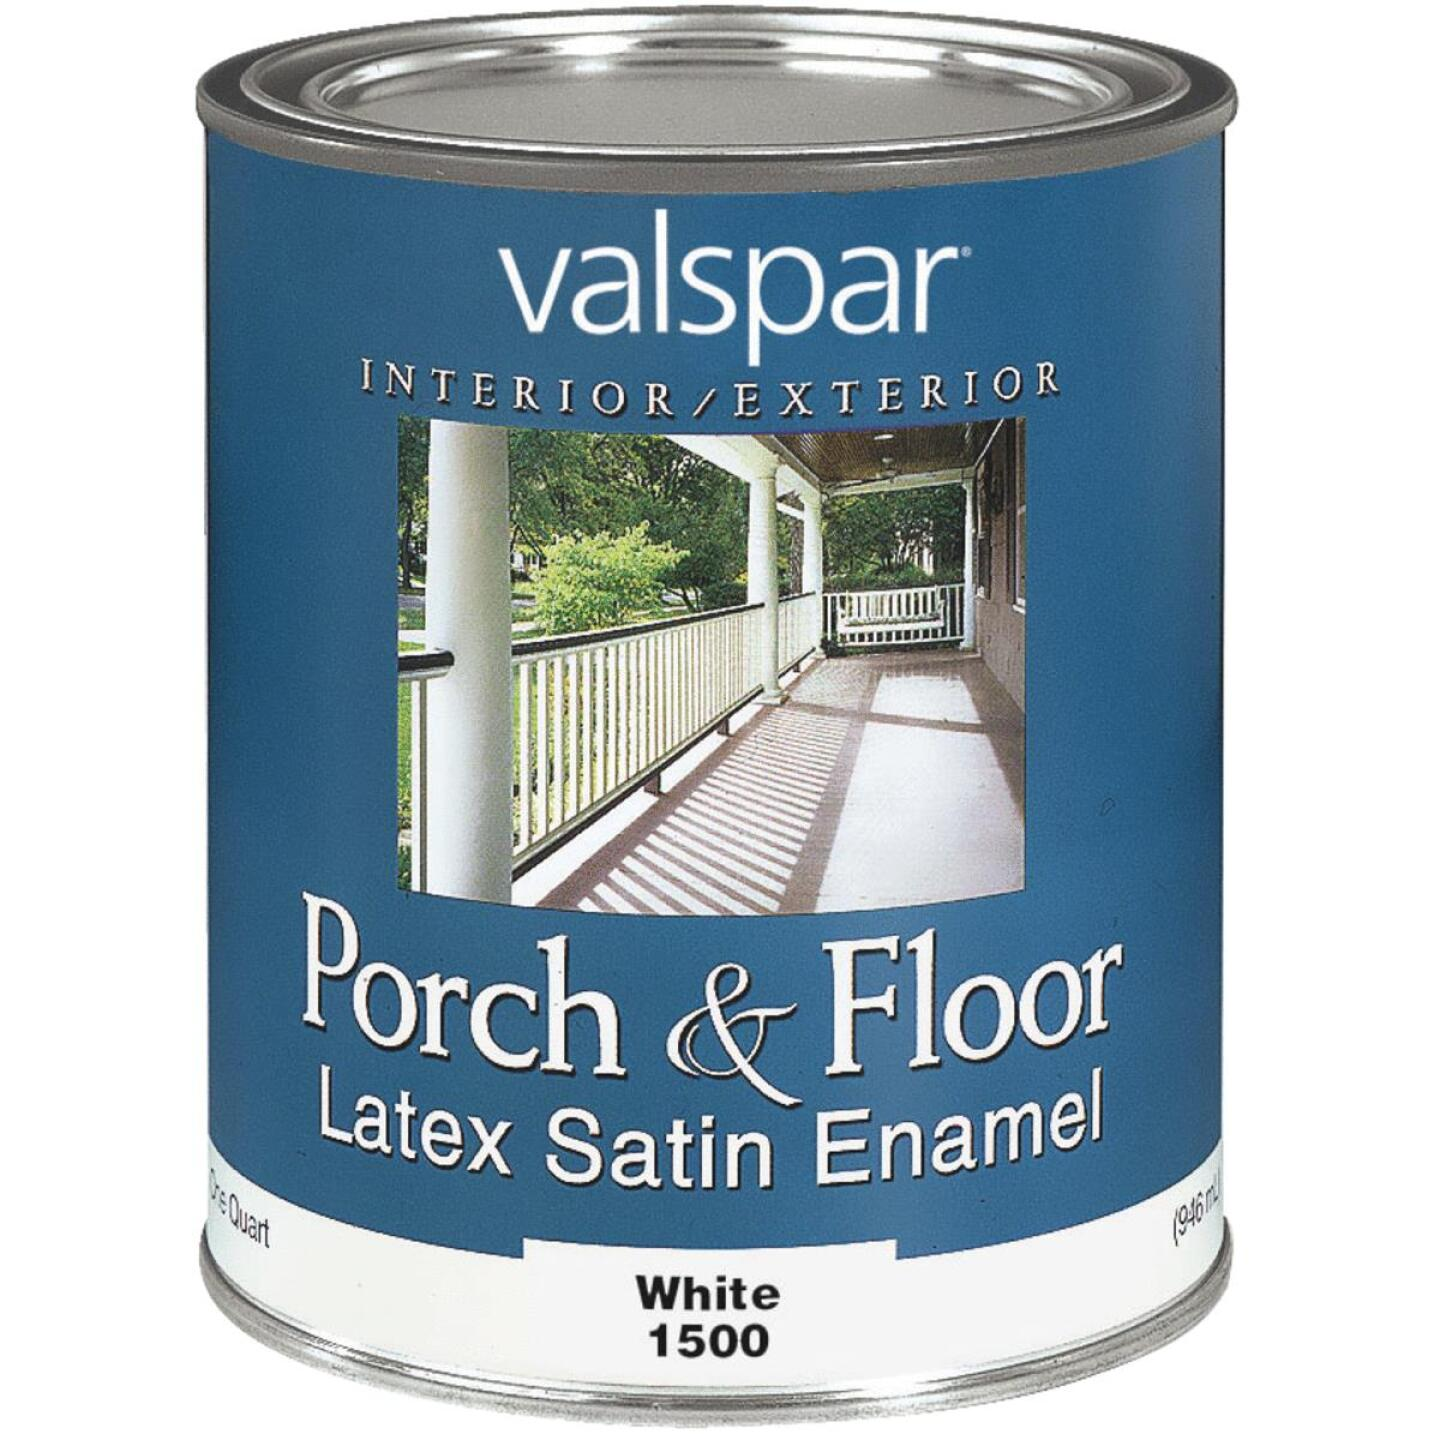 Valspar 1 Qt. White Self Priming Latex Satin Porch & Floor Enamel Image 1